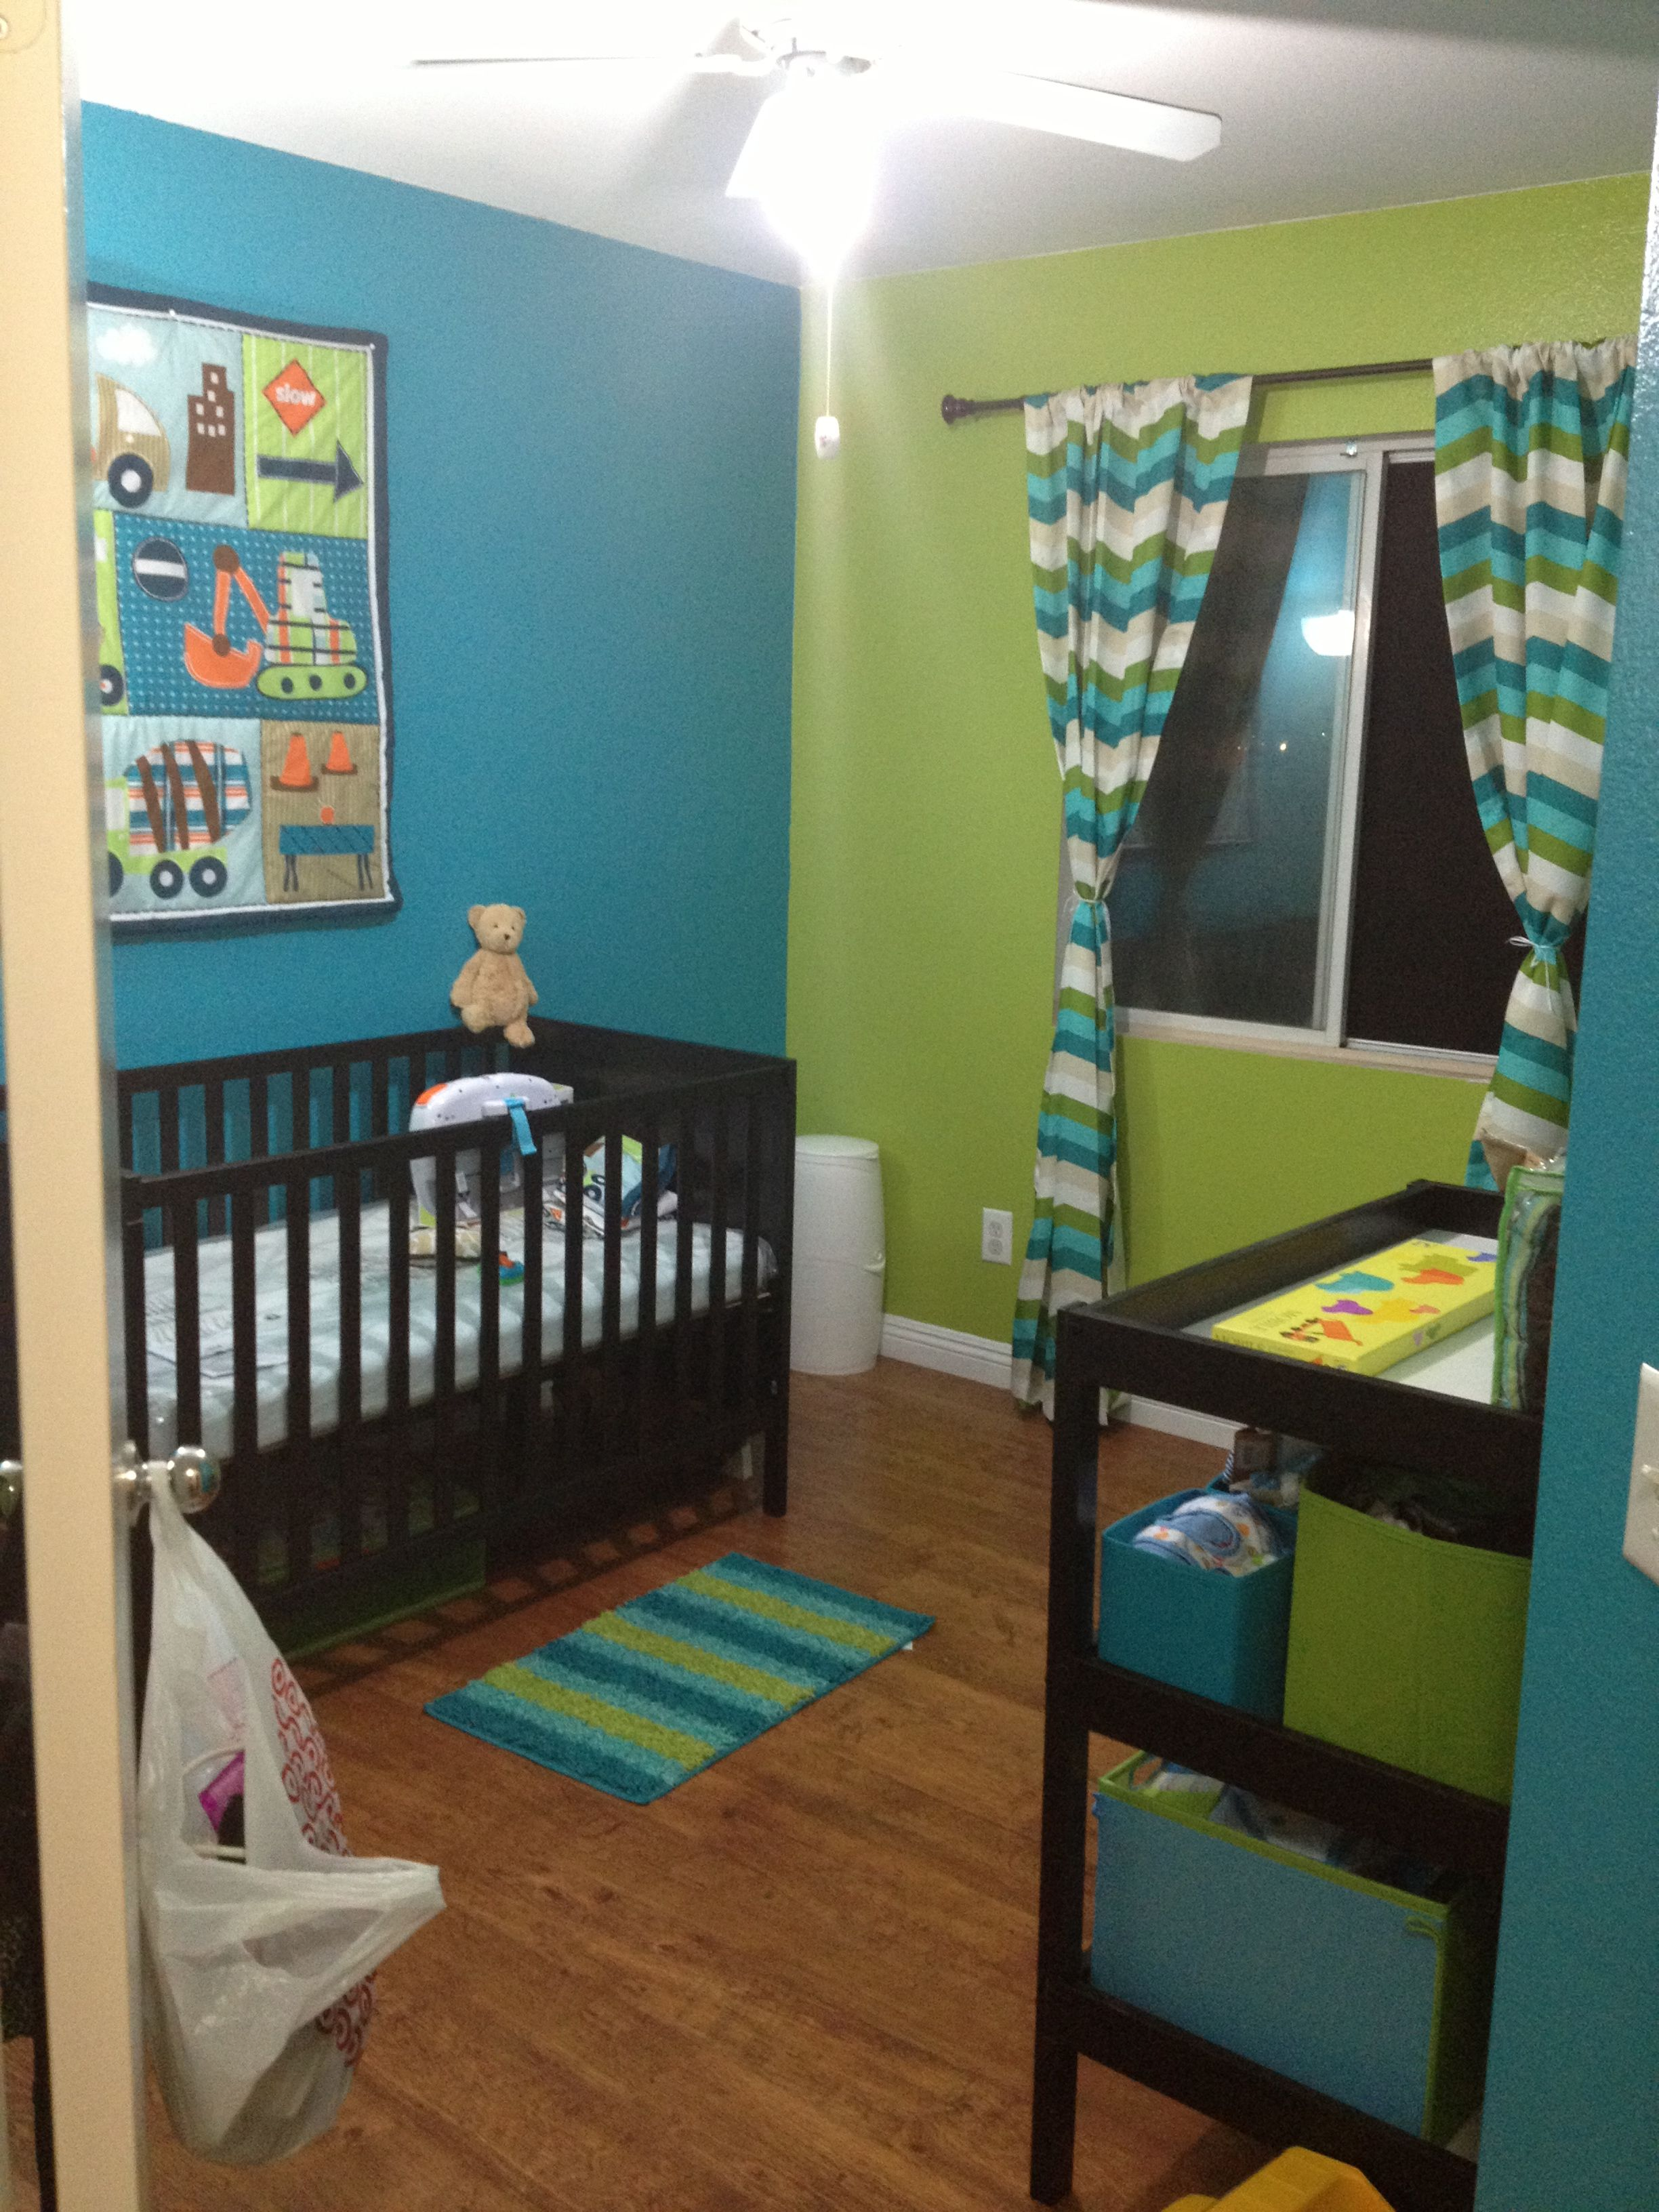 Grünes Kinderzimmer Nursery Designed For My Isaac Who Will Be Arriving In The Next Few